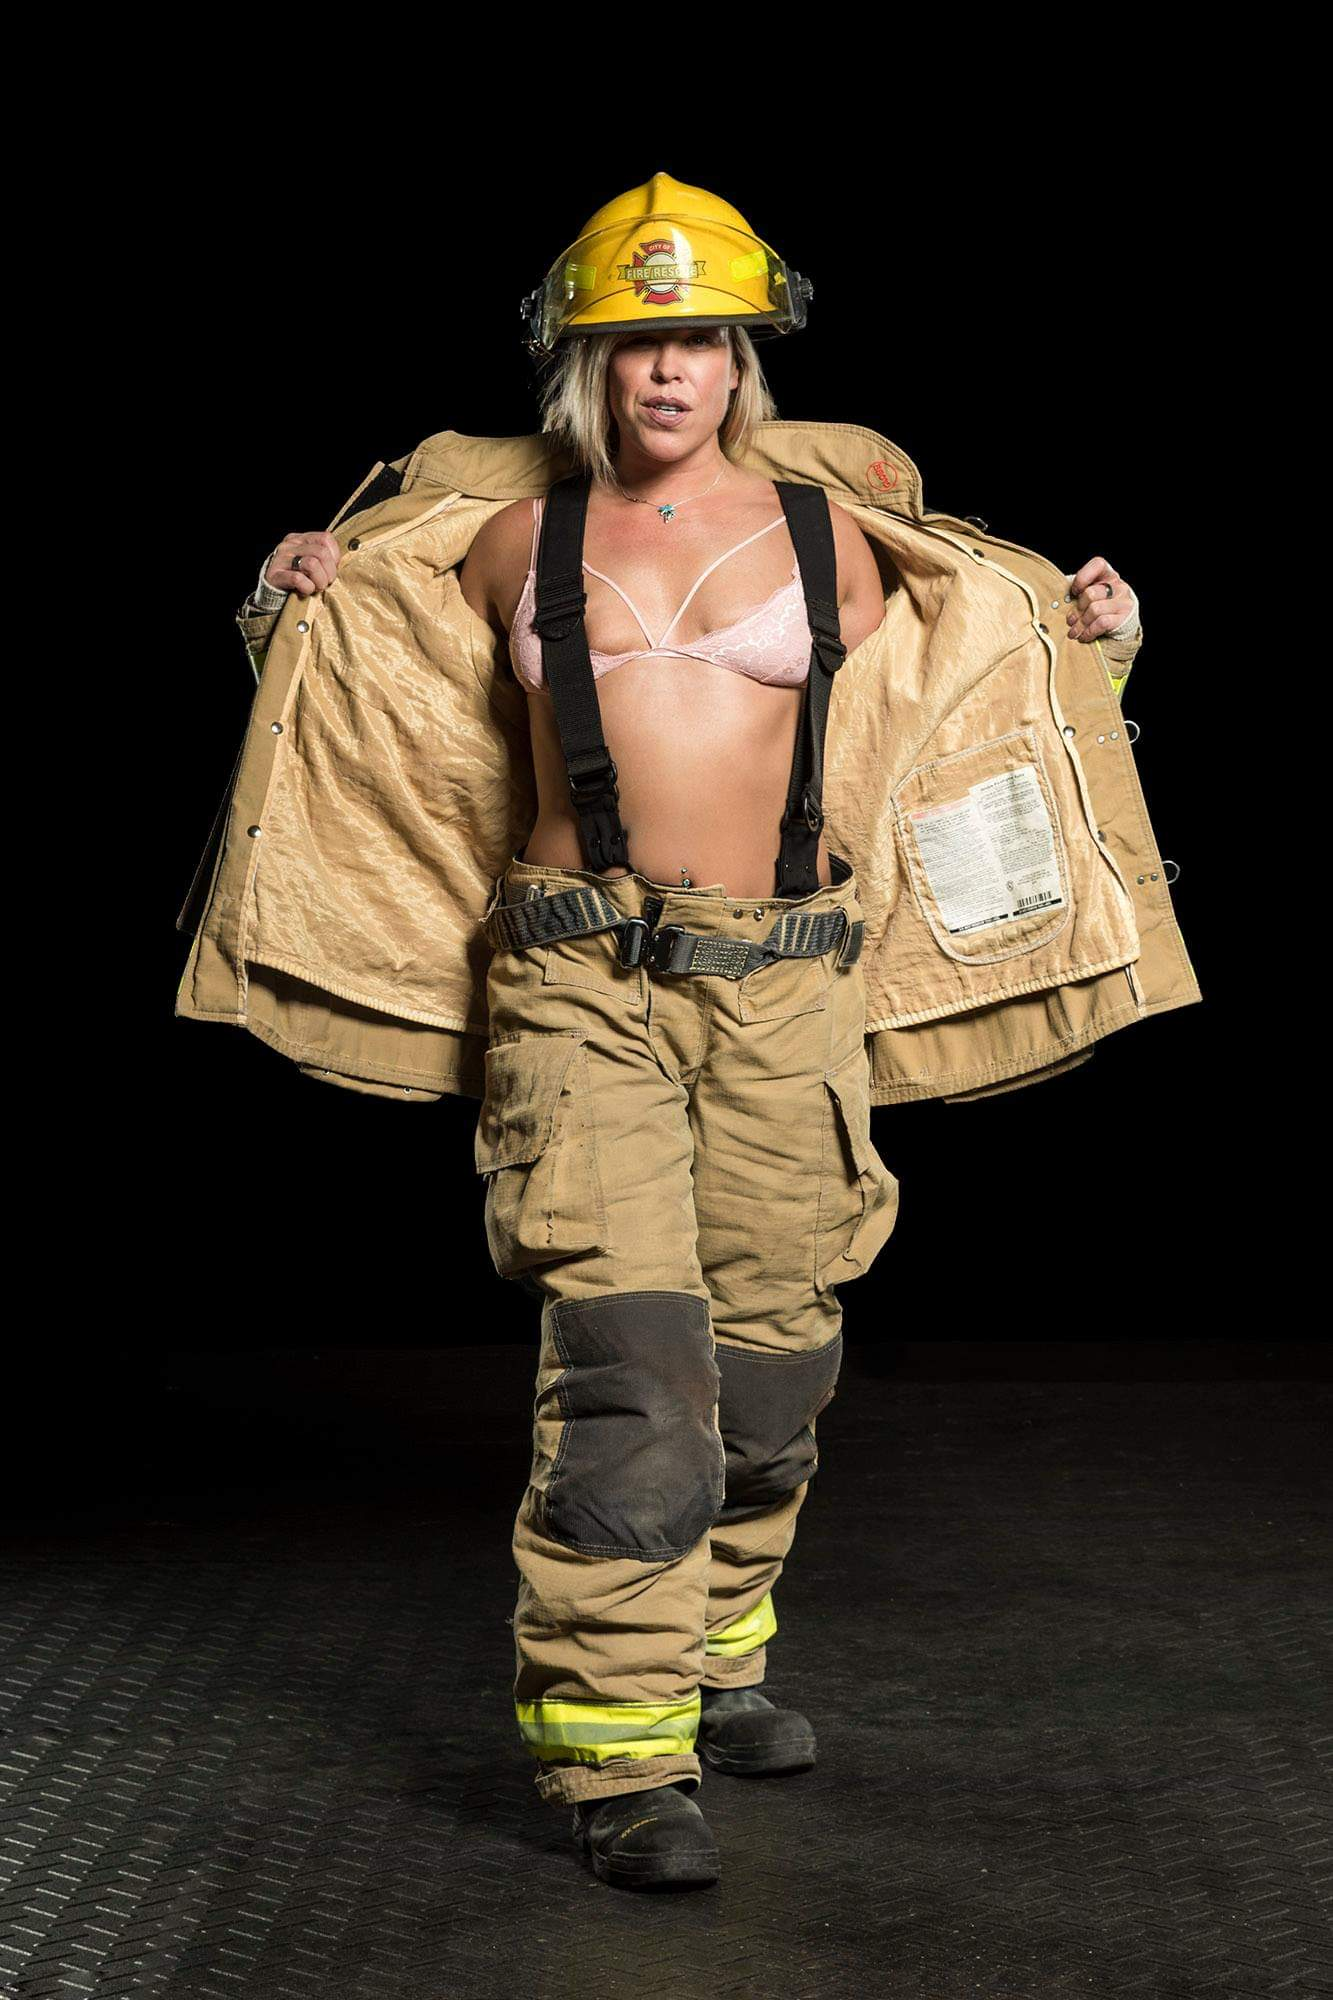 firefighter-pinup.jpg